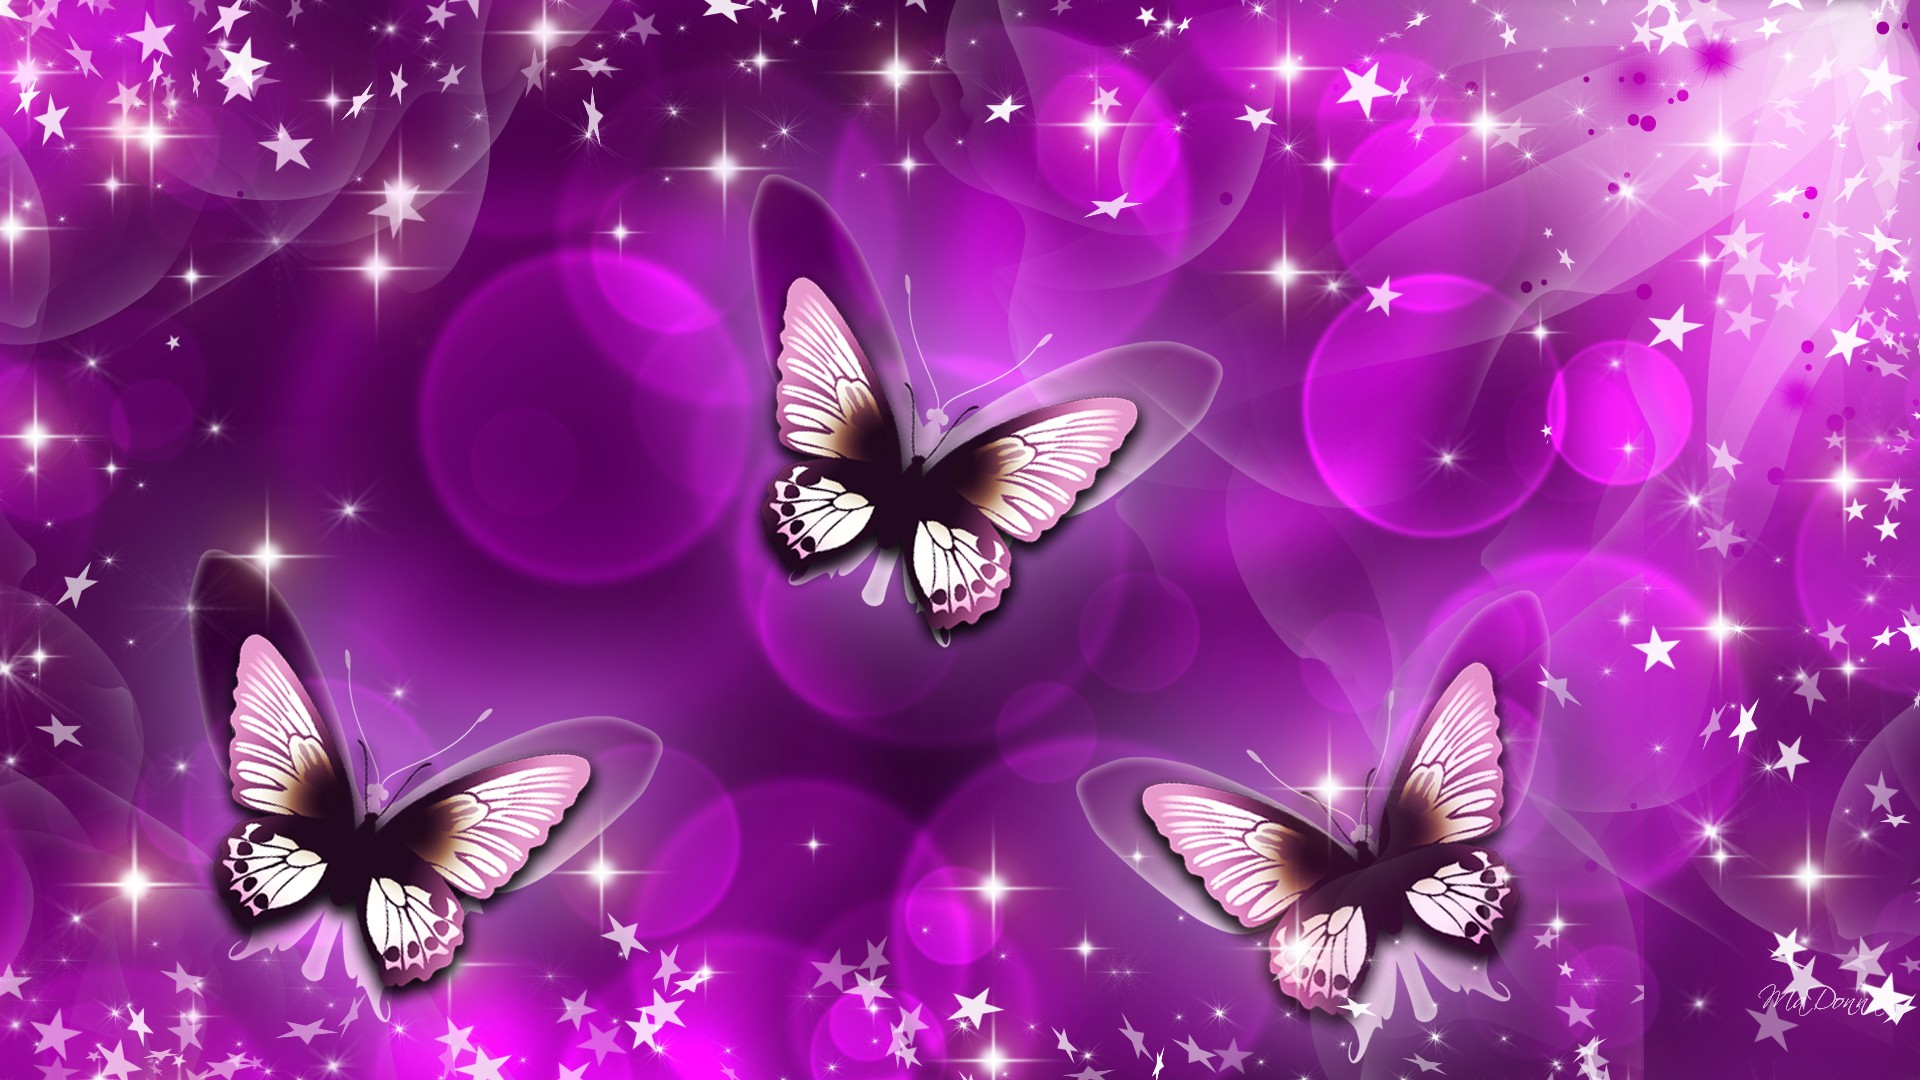 Download Cute Love Wallpapers With Quotes Butterfly Purple Art Wallpaper 11017 Wallpaper